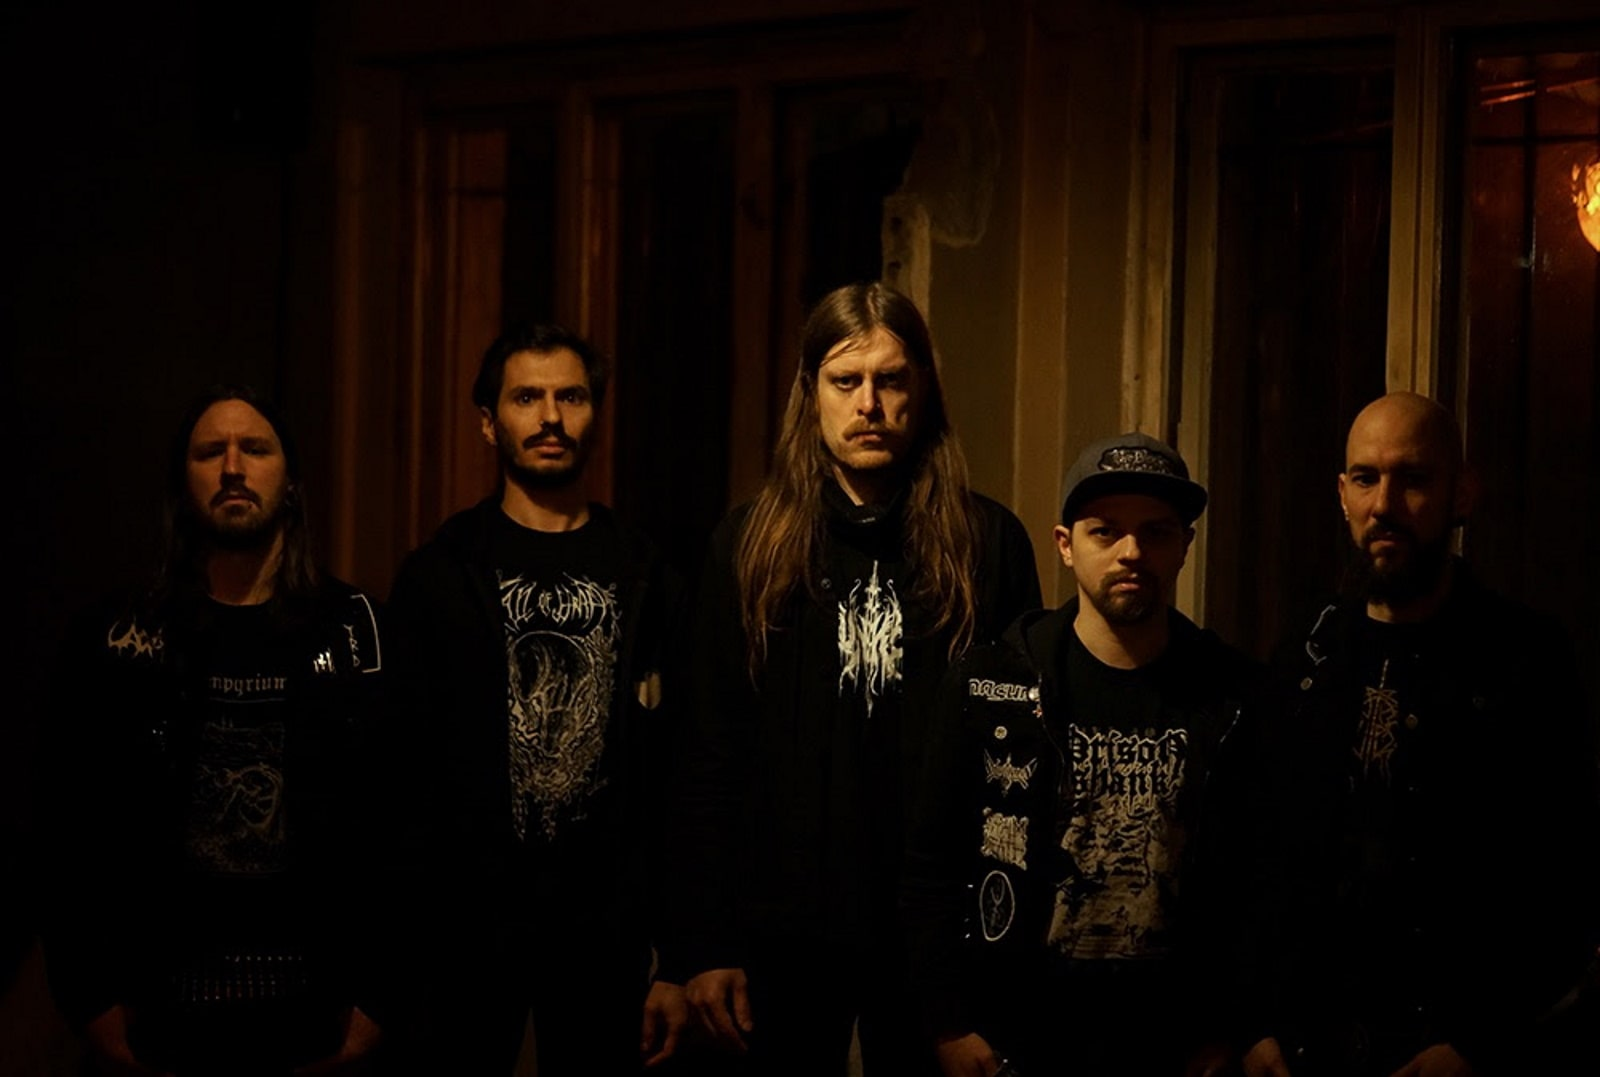 Berlin-based blackened doom outfit PRAISE THE PLAGUE